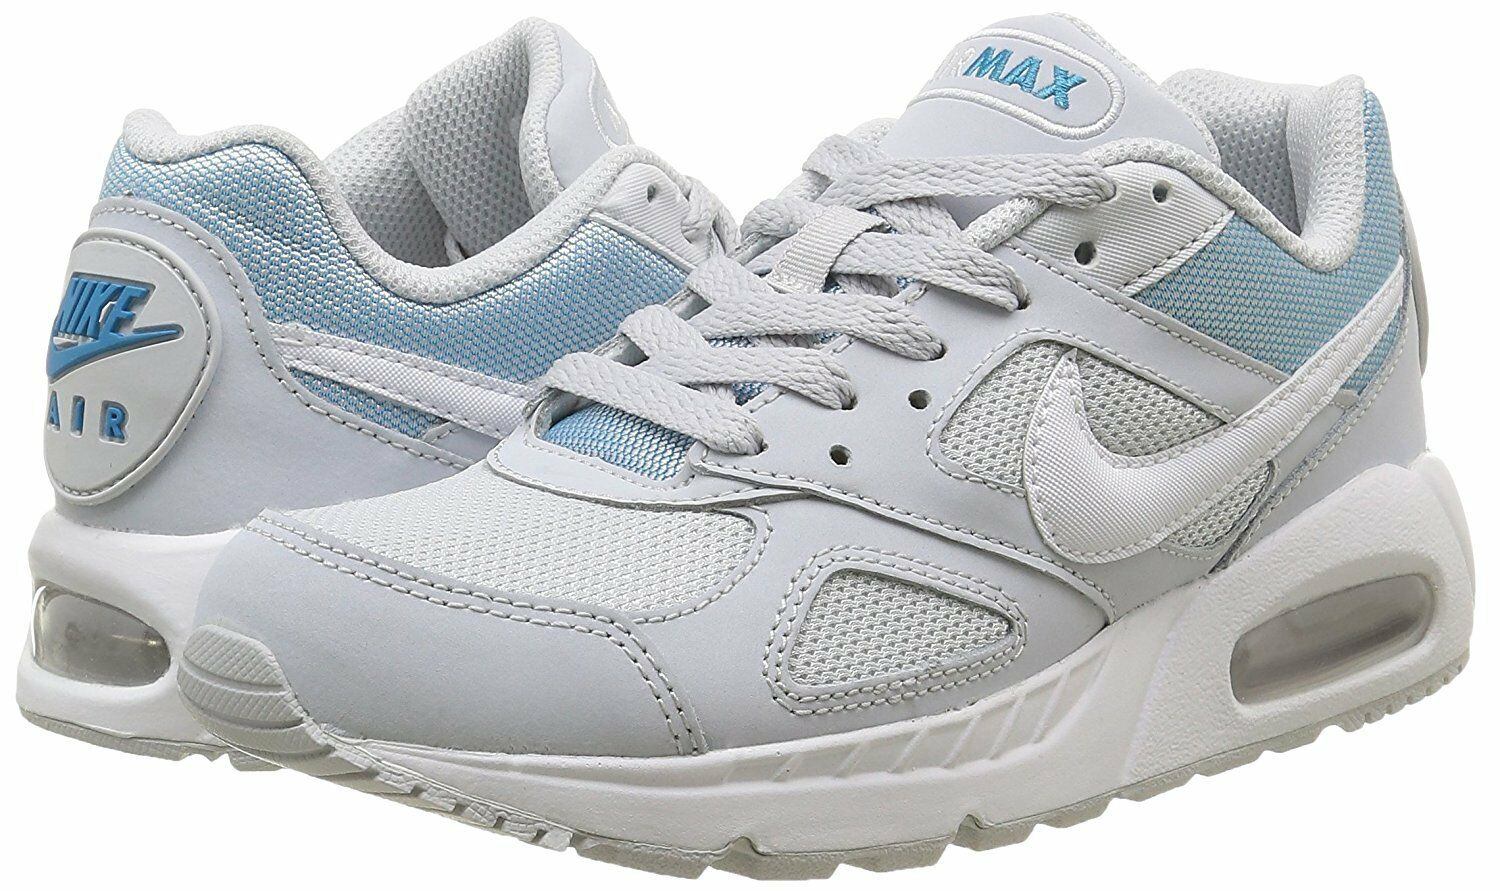 Women's Nike Mult Air Max IVO Running Shoes, 580519 014 Mult Nike Sizes Pure Platinum/Whit 36670a